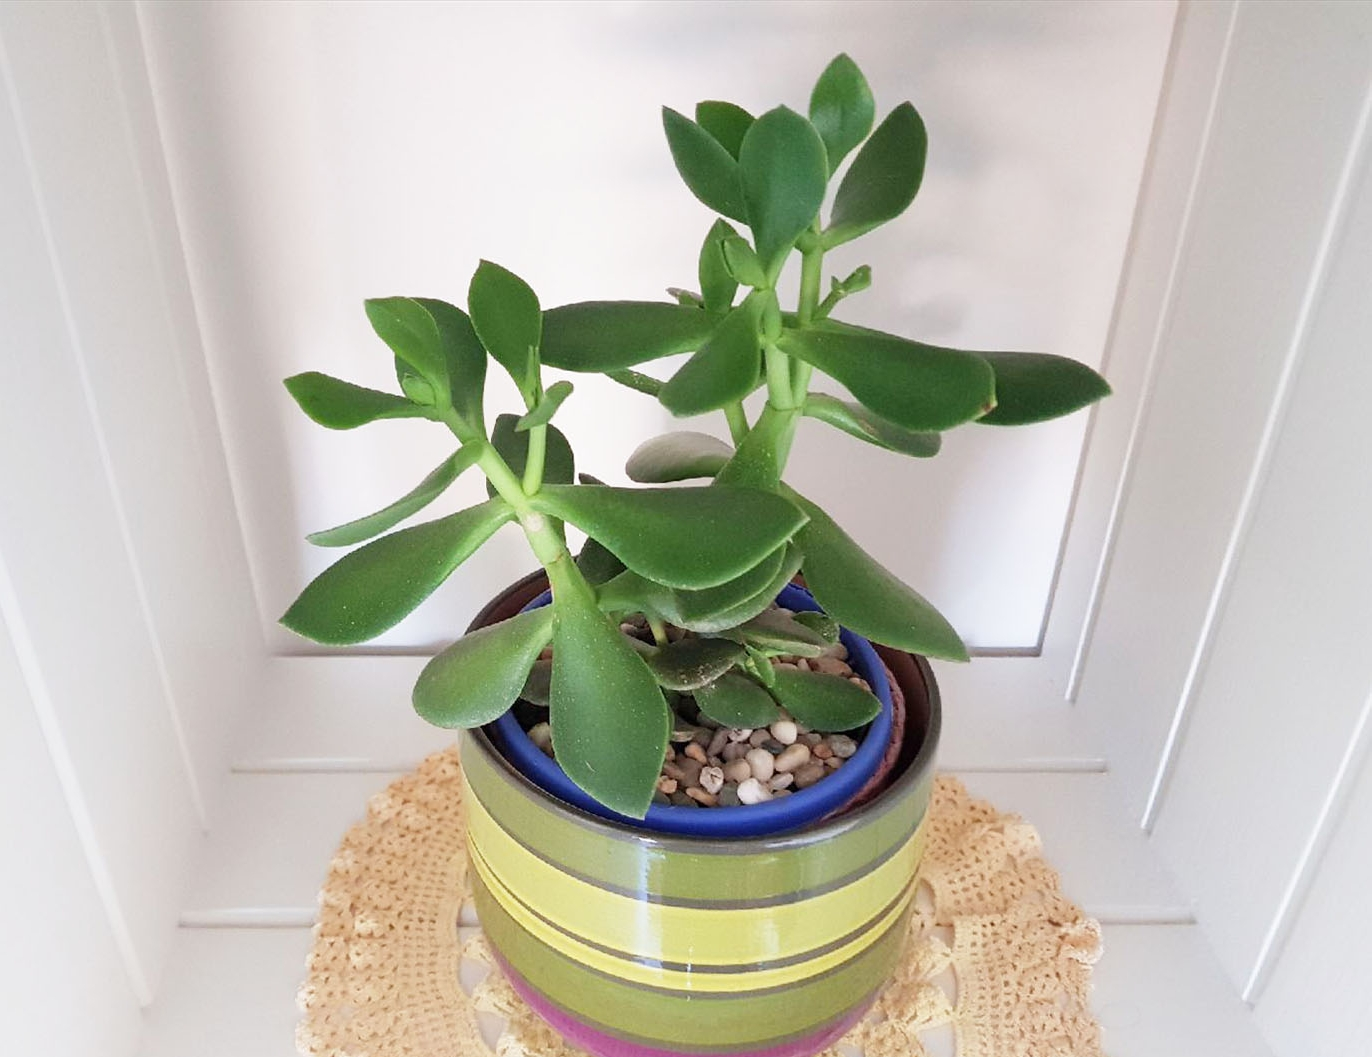 The Jade plant I keep in my office is doing great inside.